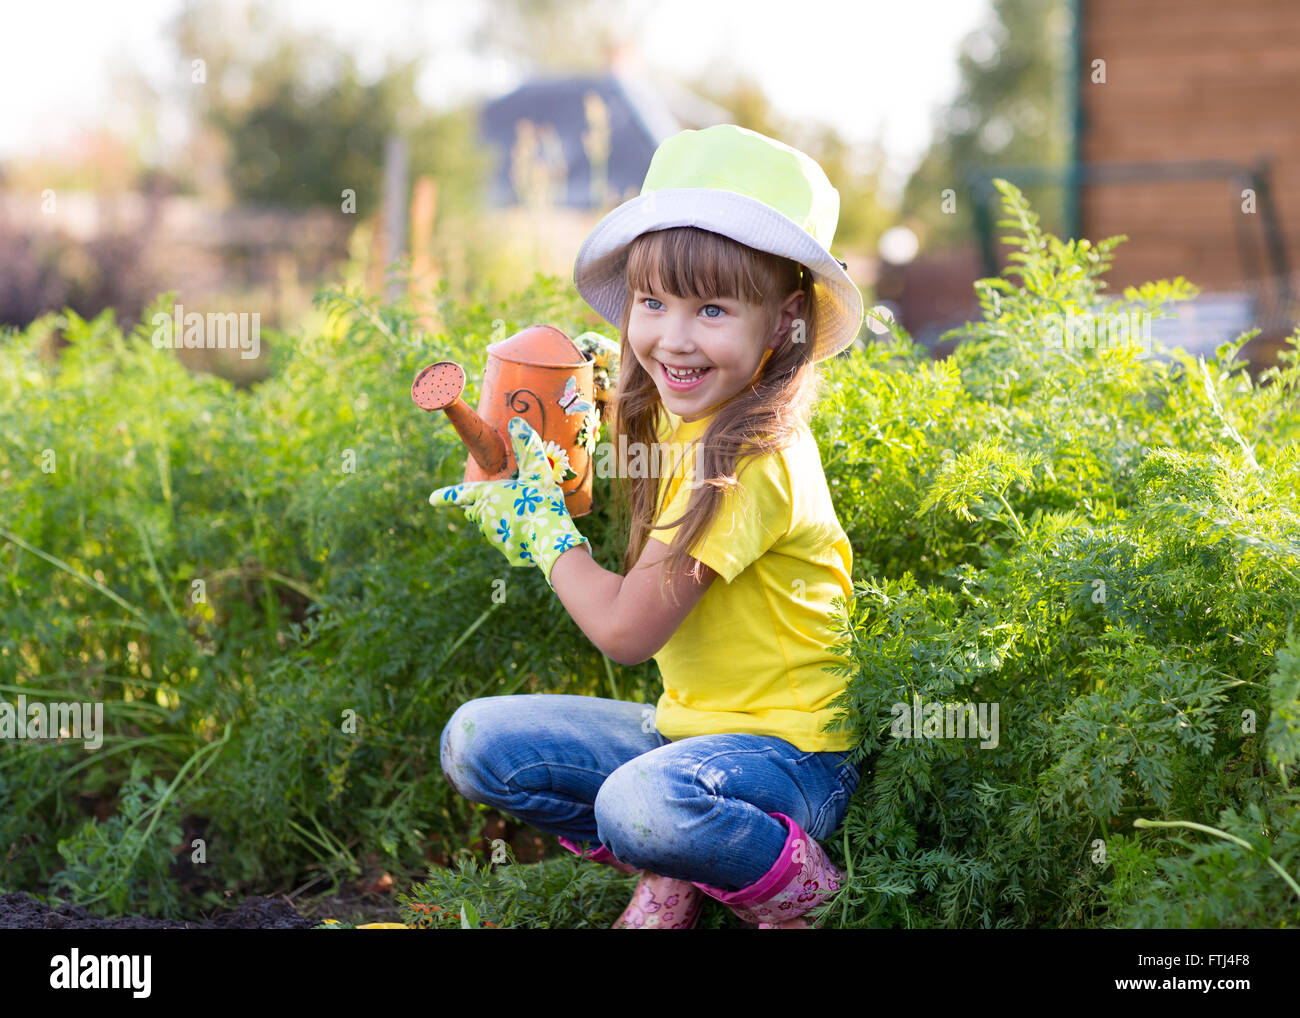 Little girl posing with watering can Stock Photo